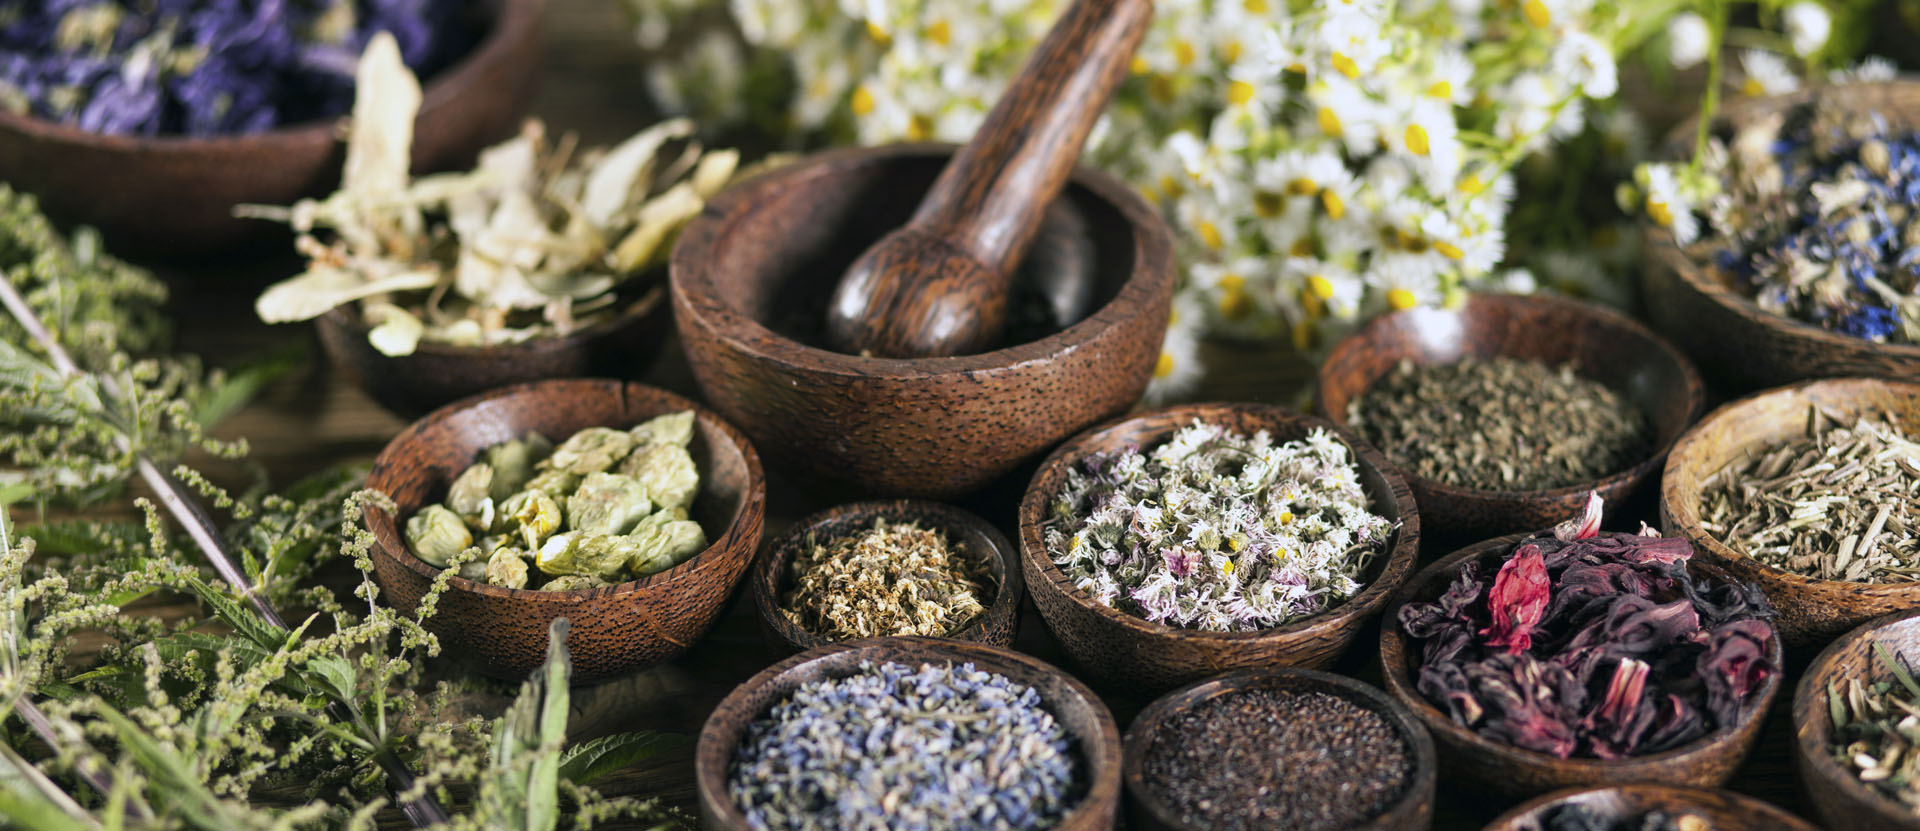 The Yin of Health with Chinese Medicine